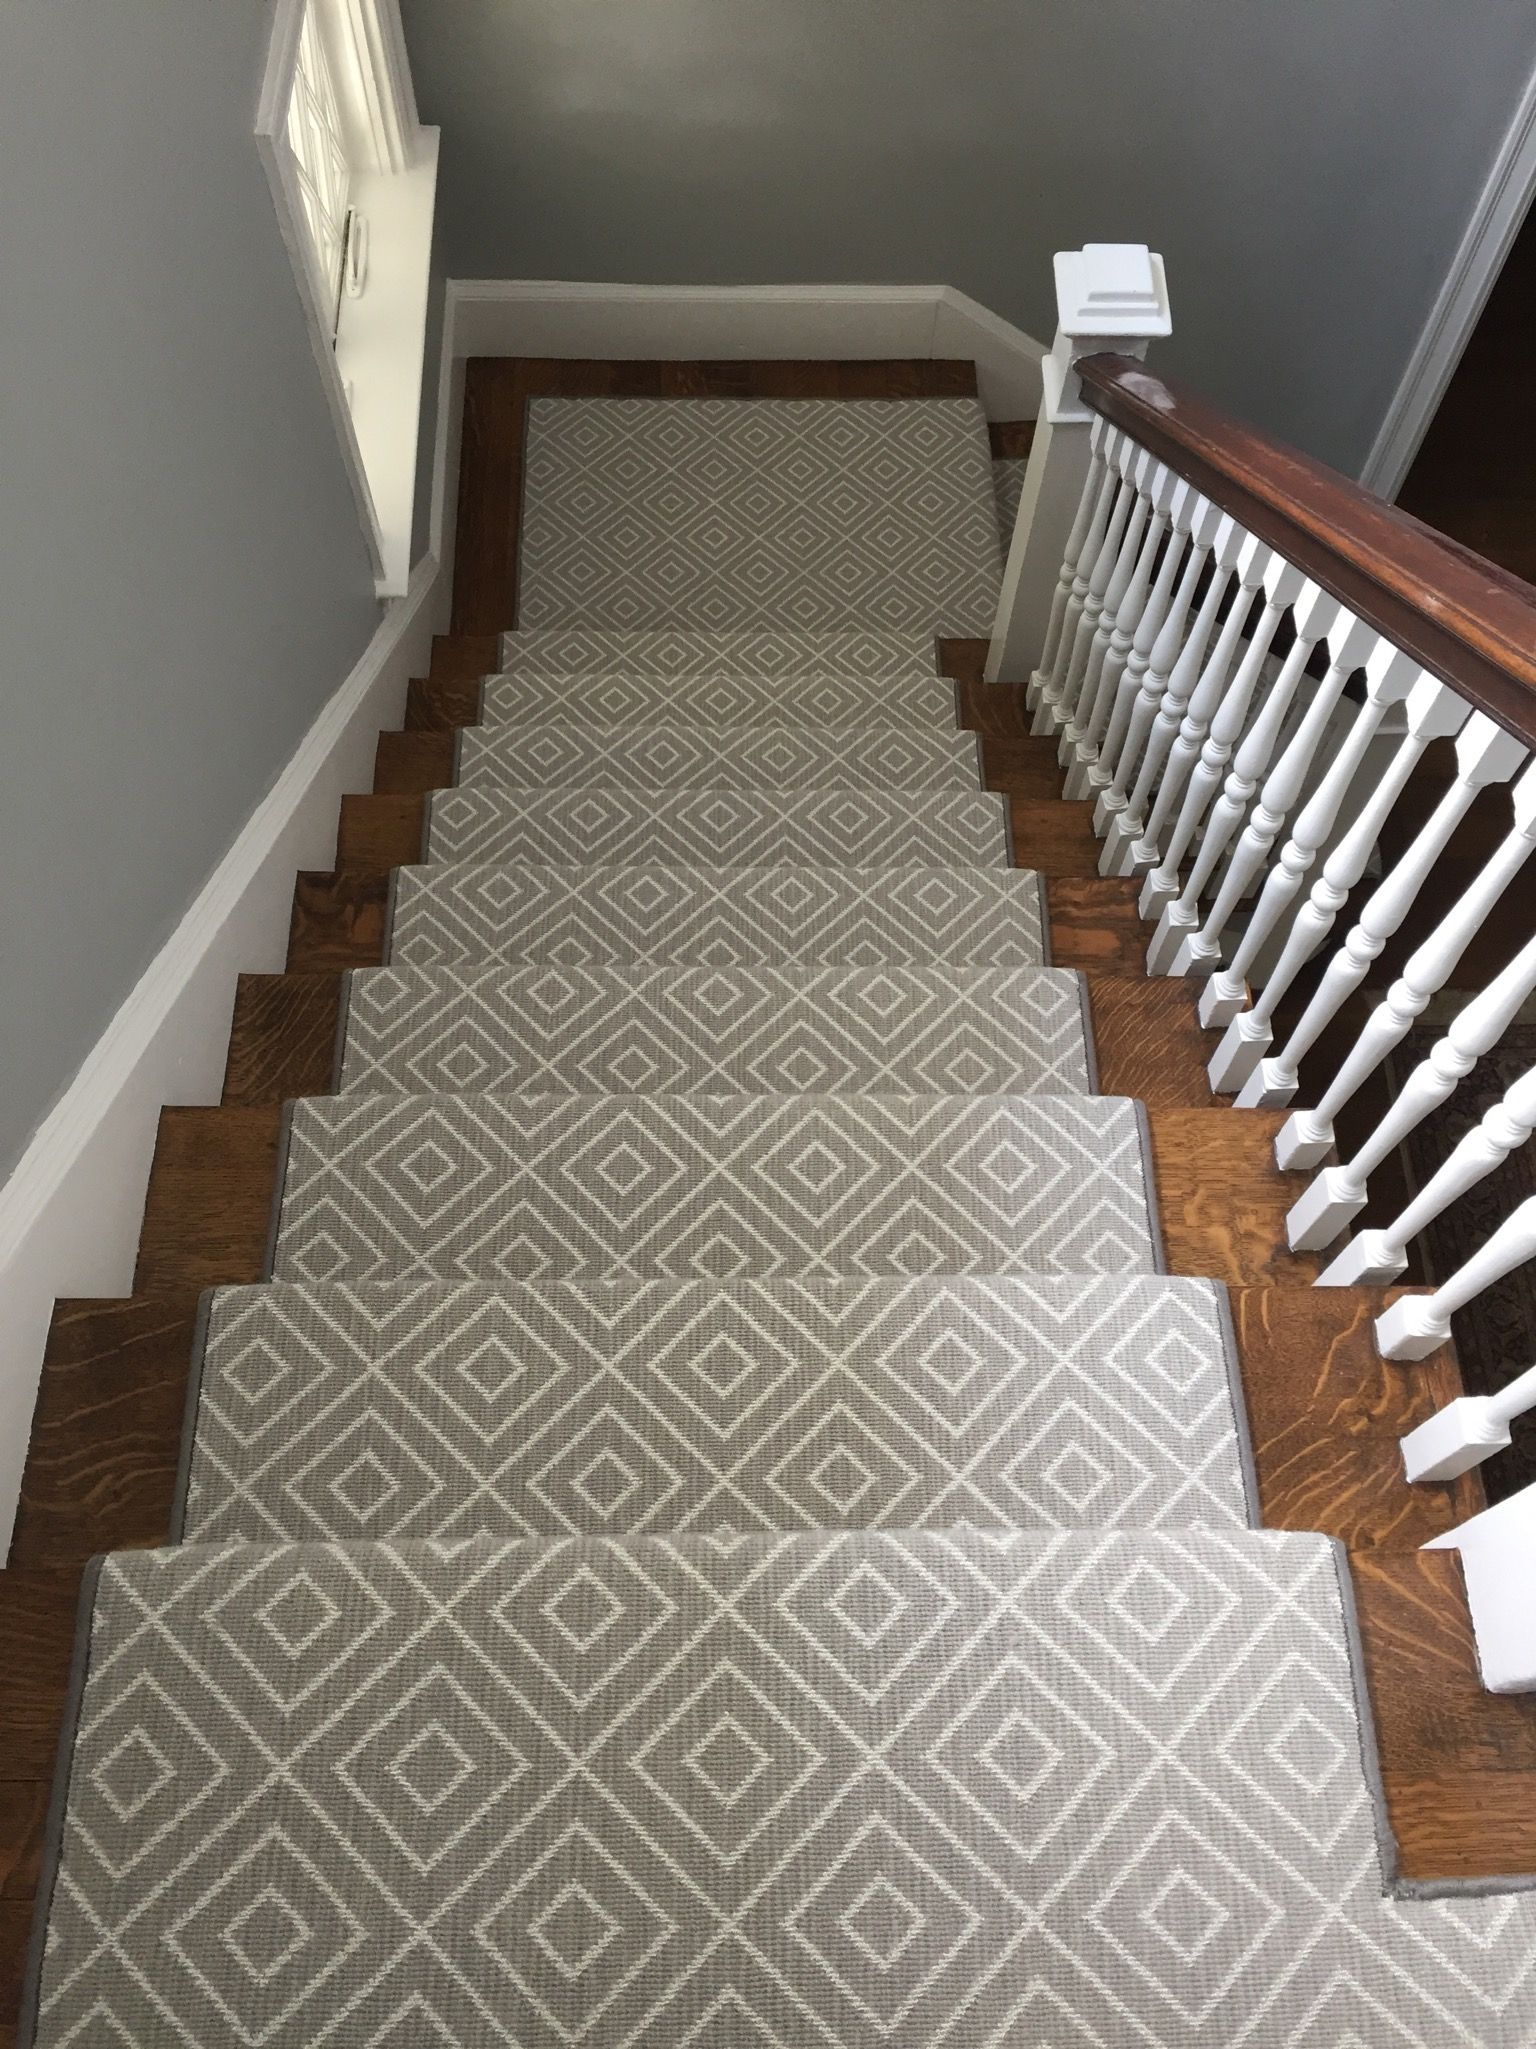 Pin By Scoval Staheli On Diy Home Projects Carpet Stairs